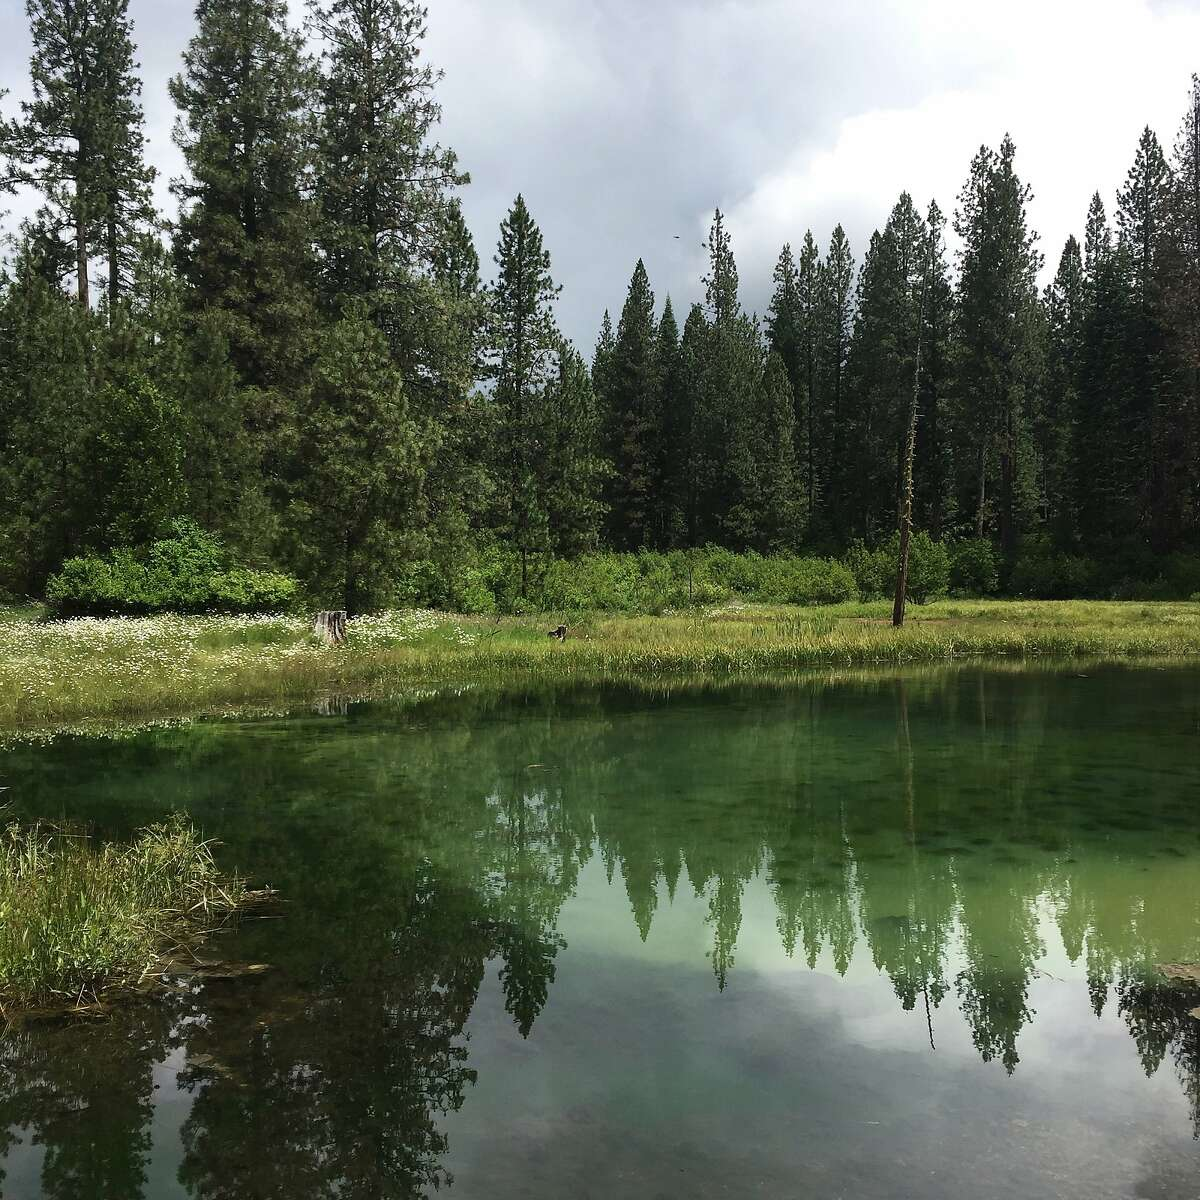 P McCloud Soda Springs Working Forest, photo credit Pacific Forest Trust, taken in June 2016.